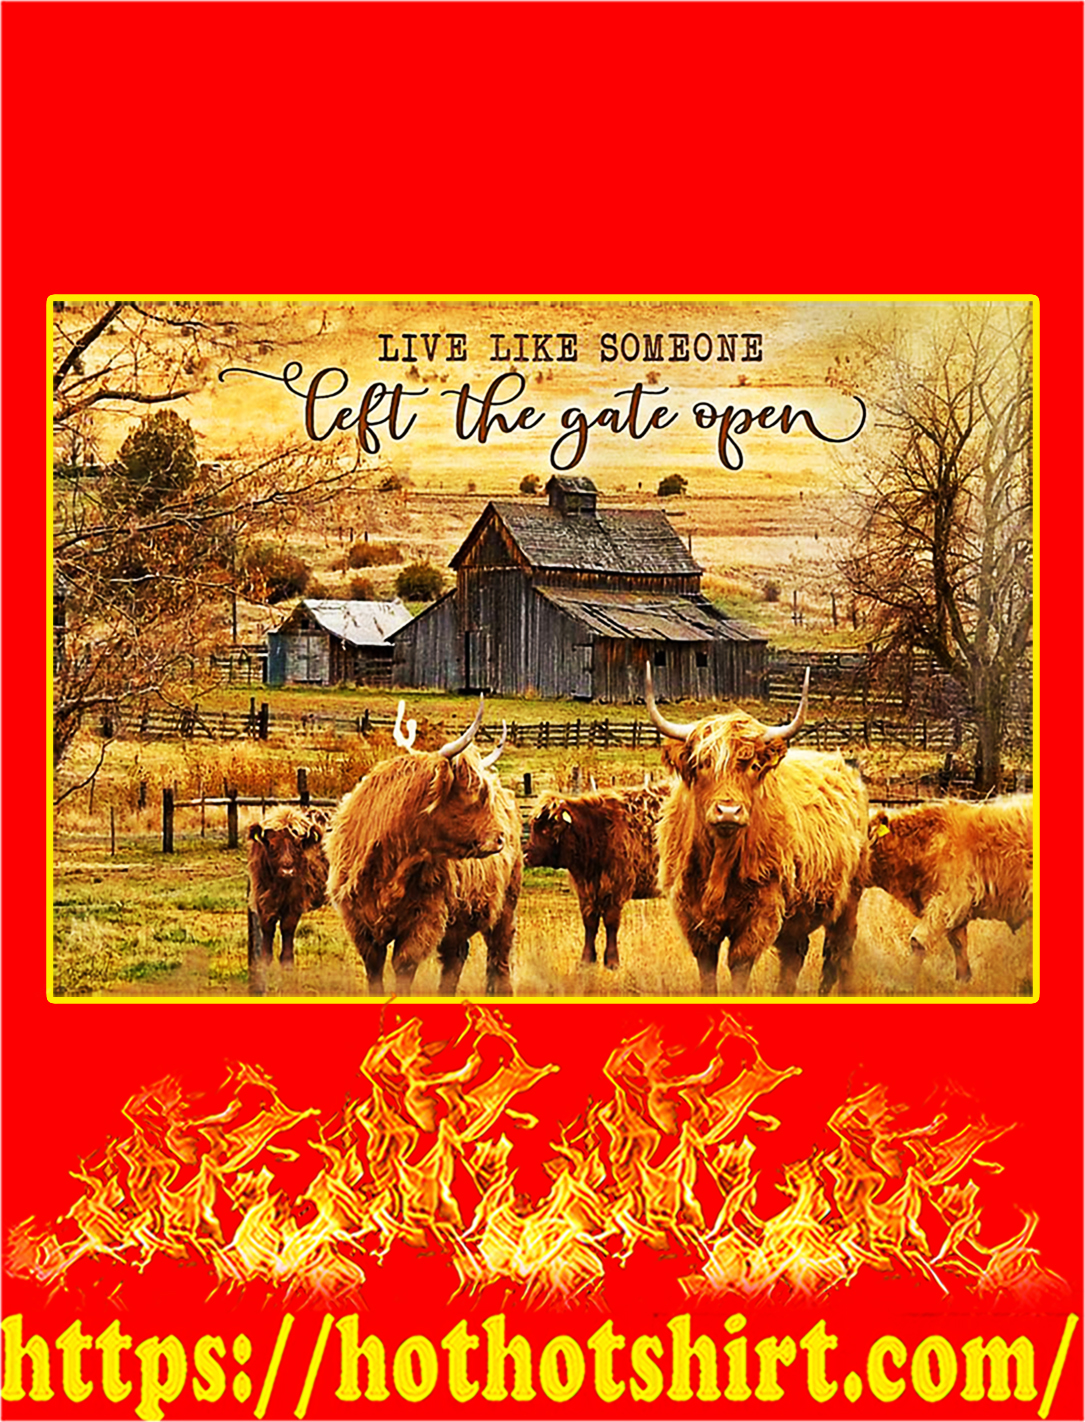 Highland cattle live like someone left the gate open poster - A1